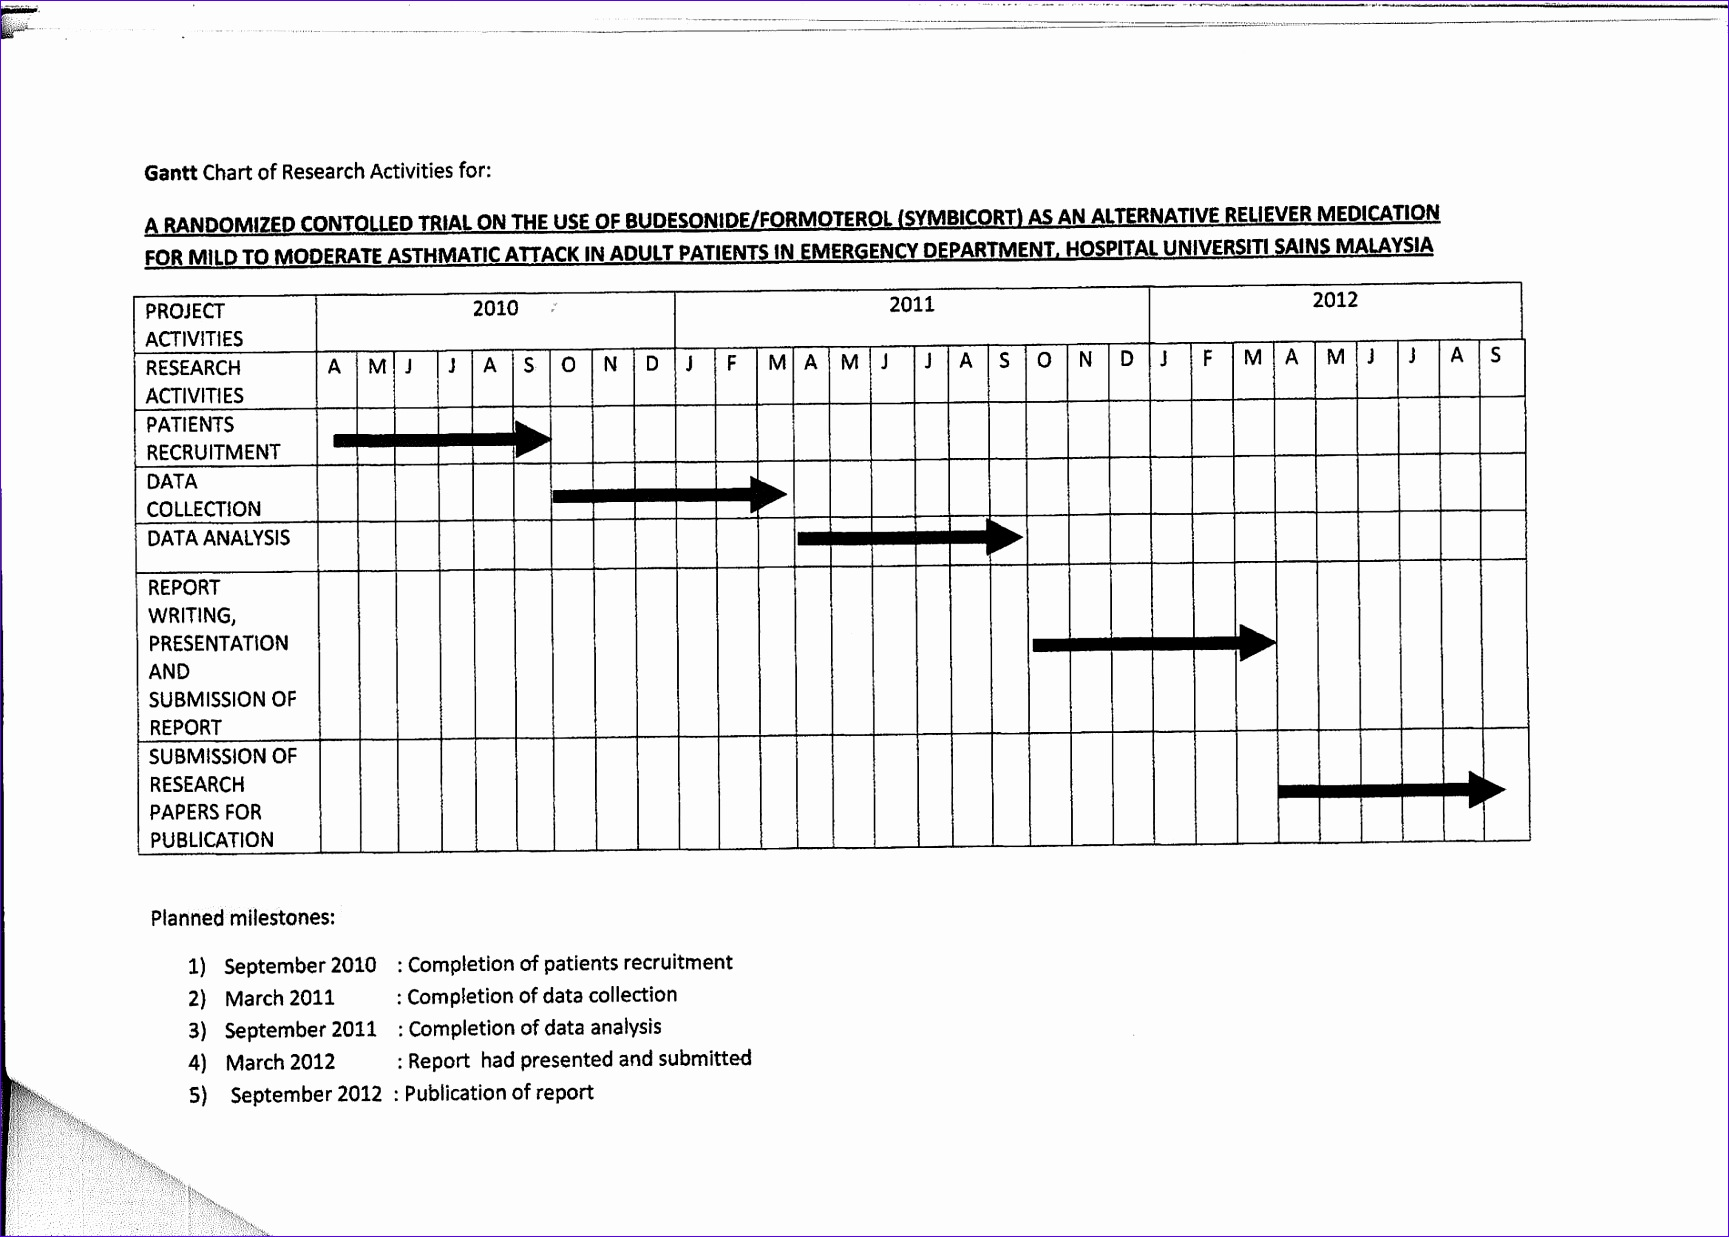 template free templatez gantt chart excel templates gantt Simple Gantt Chart Template Excel Download chart excel templates jeffreyellisorg excel Simple Gantt Chart Template